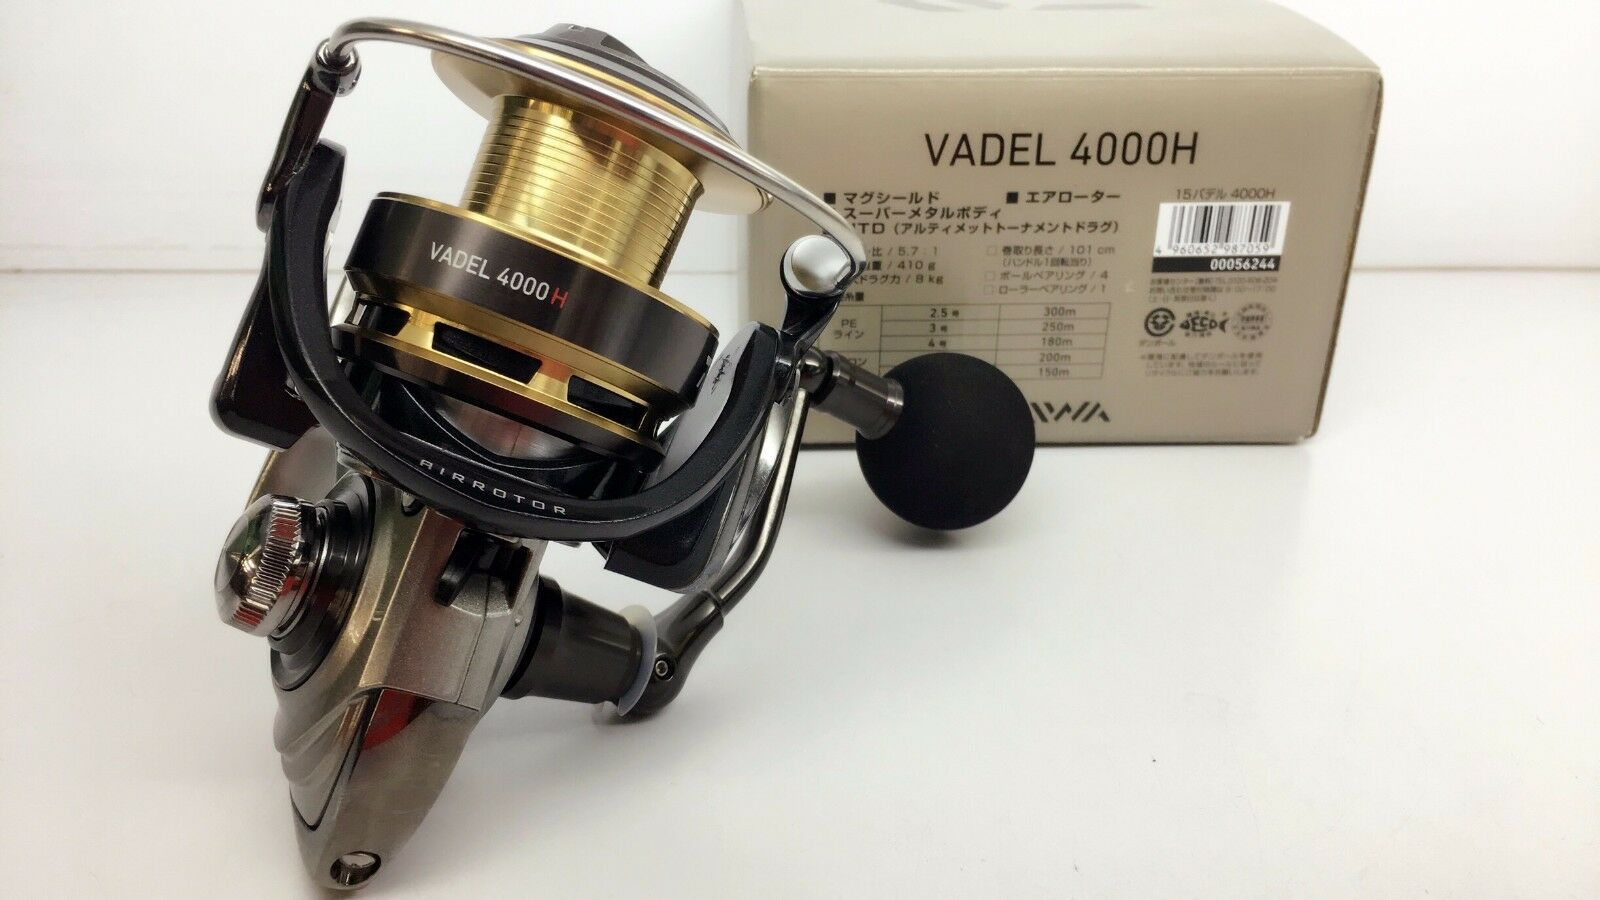 DAIWA VADEL 4000H MAG SEALED Spinning Reel MAGSEALED Fedex Priority 2day to USA